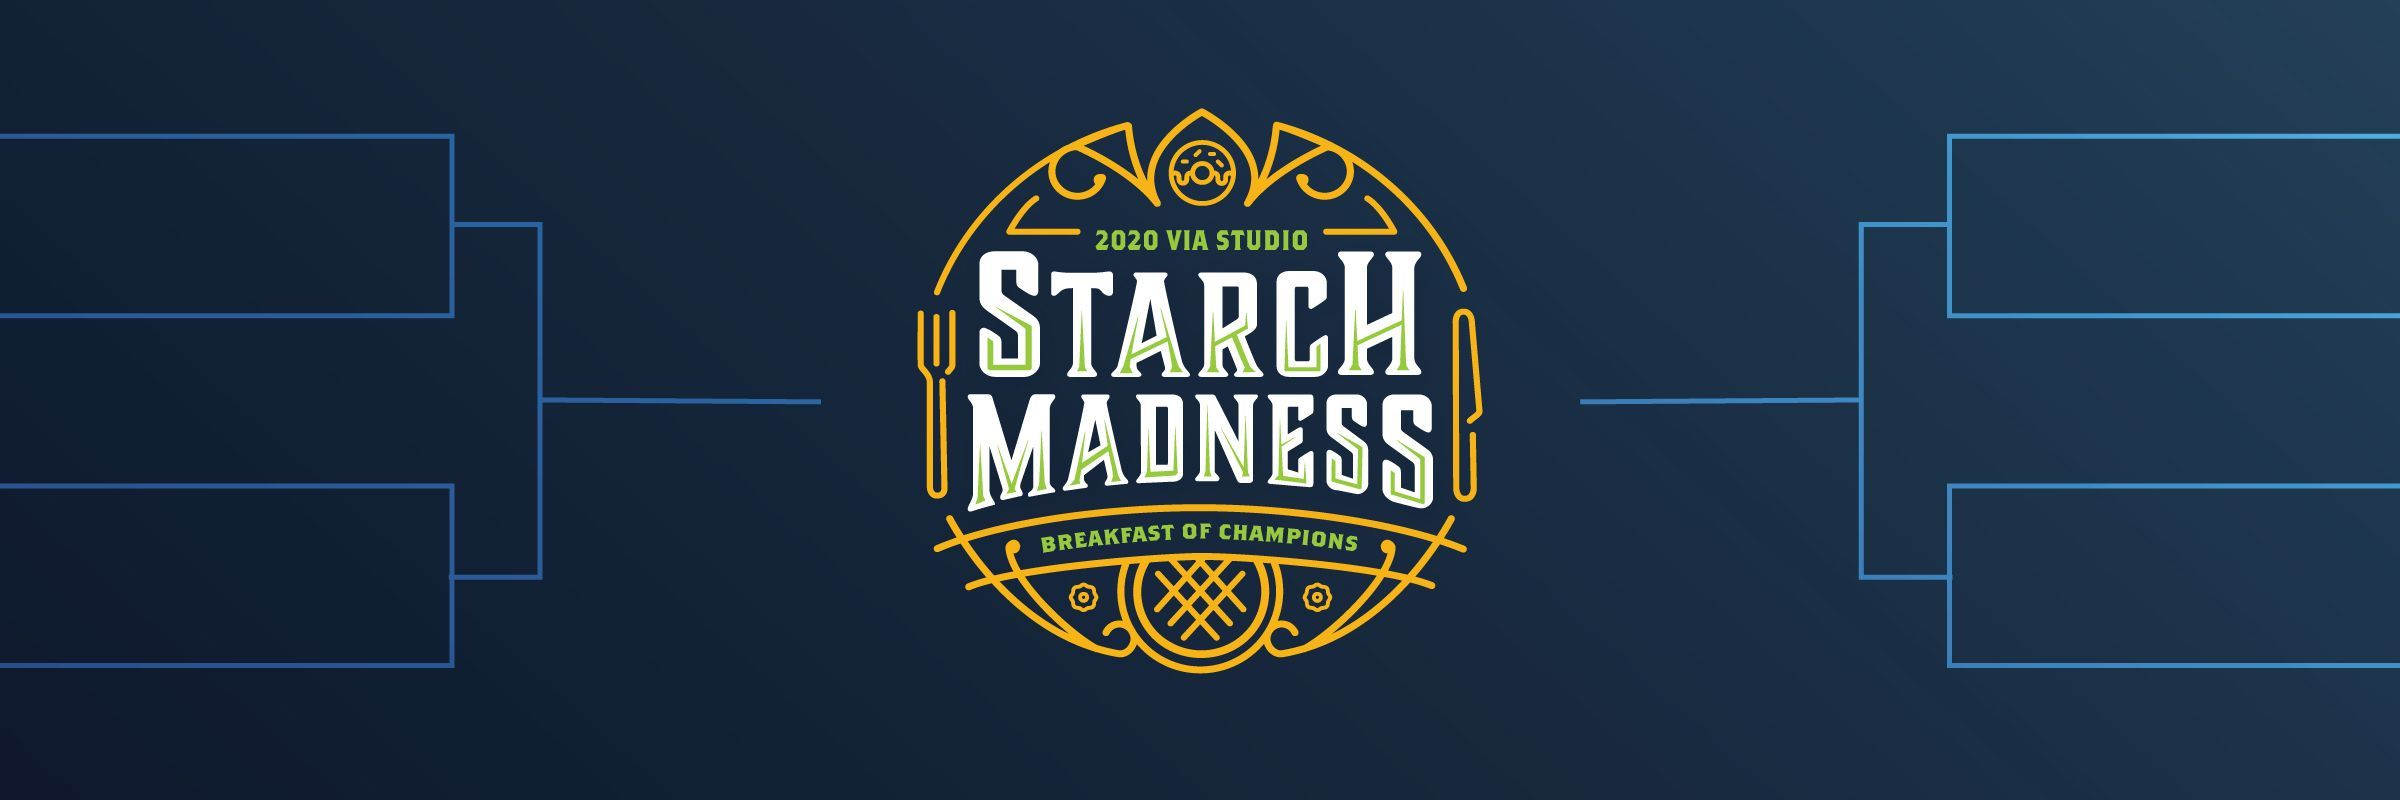 VIA Studio Social: Starch Madness